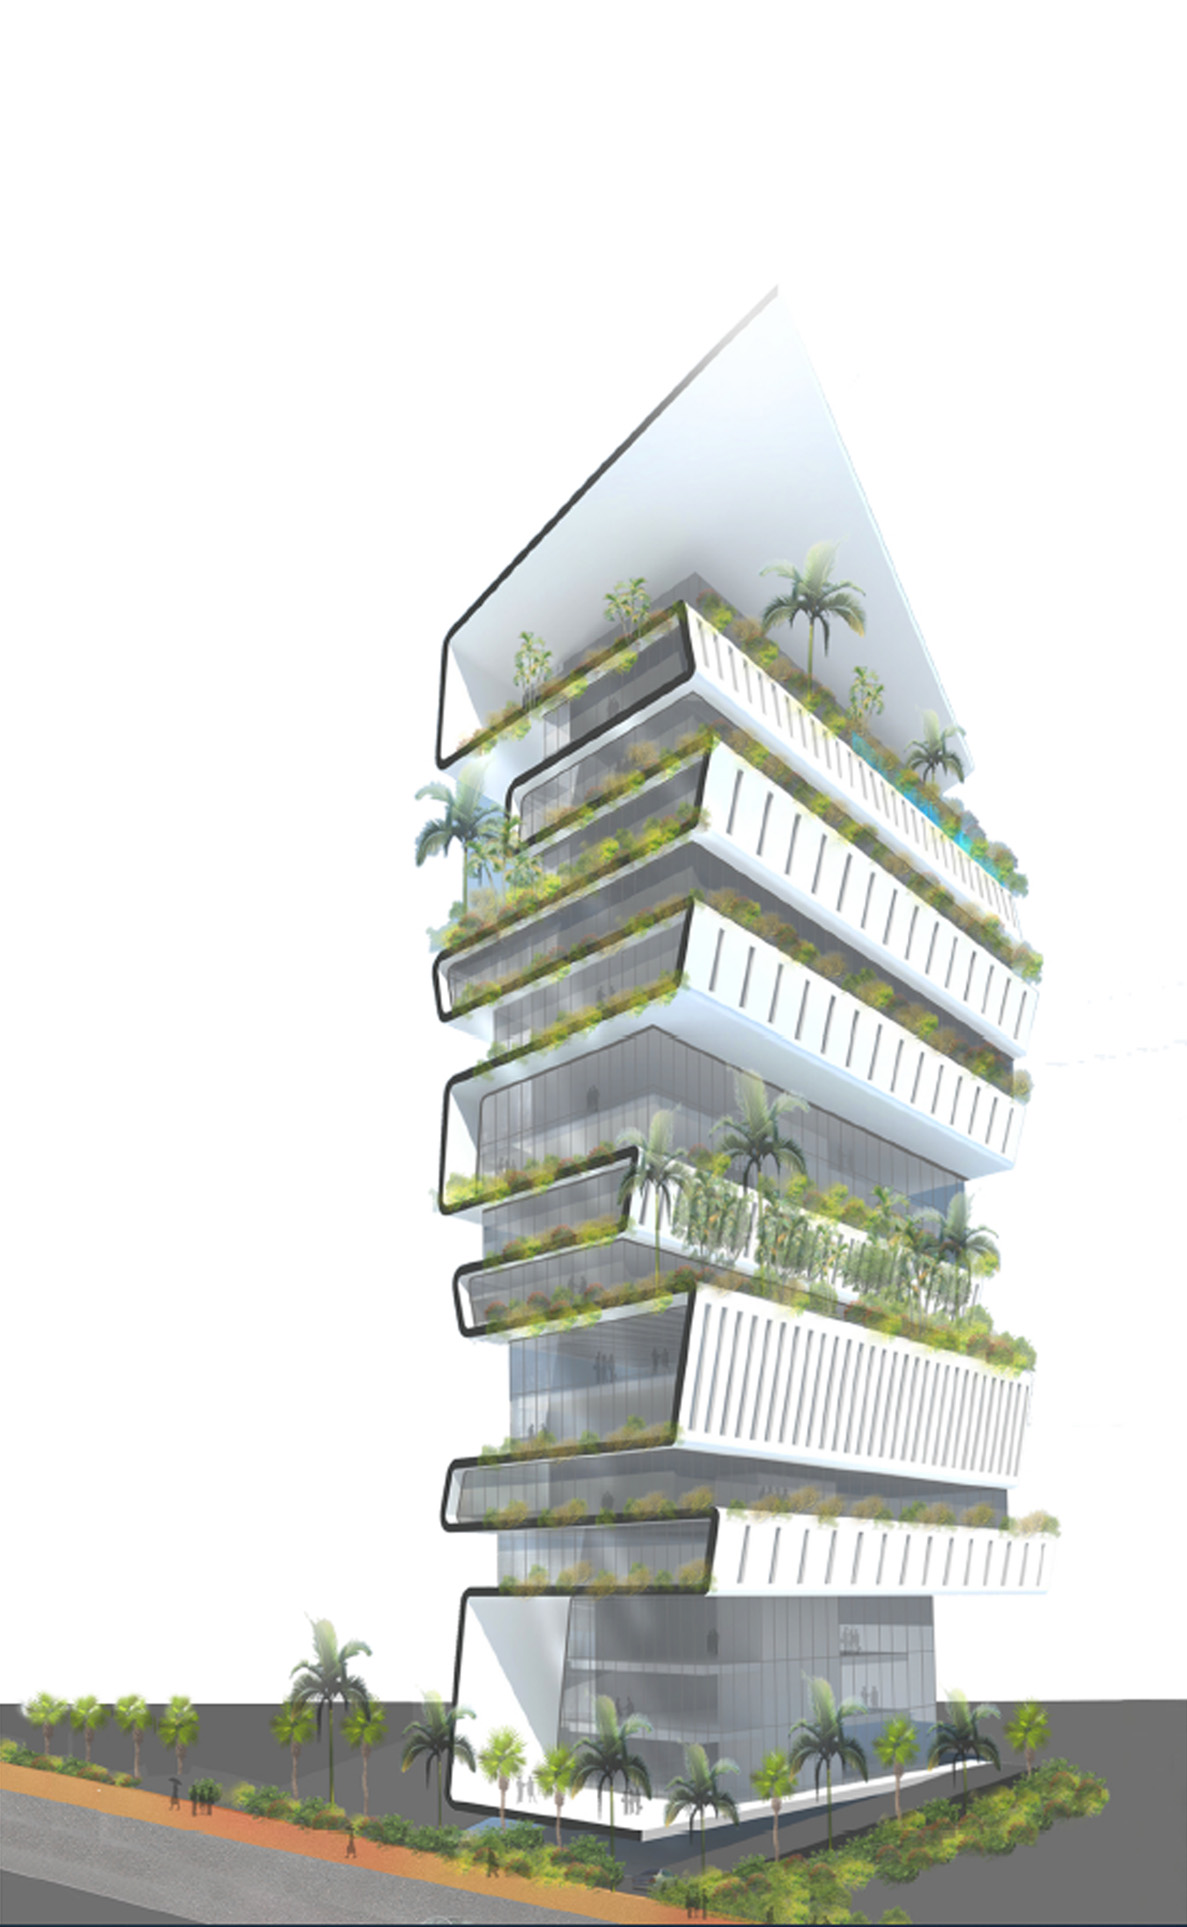 PROPOSED 18 STOREYS OFFICE BUILDING, PHNOM PENH